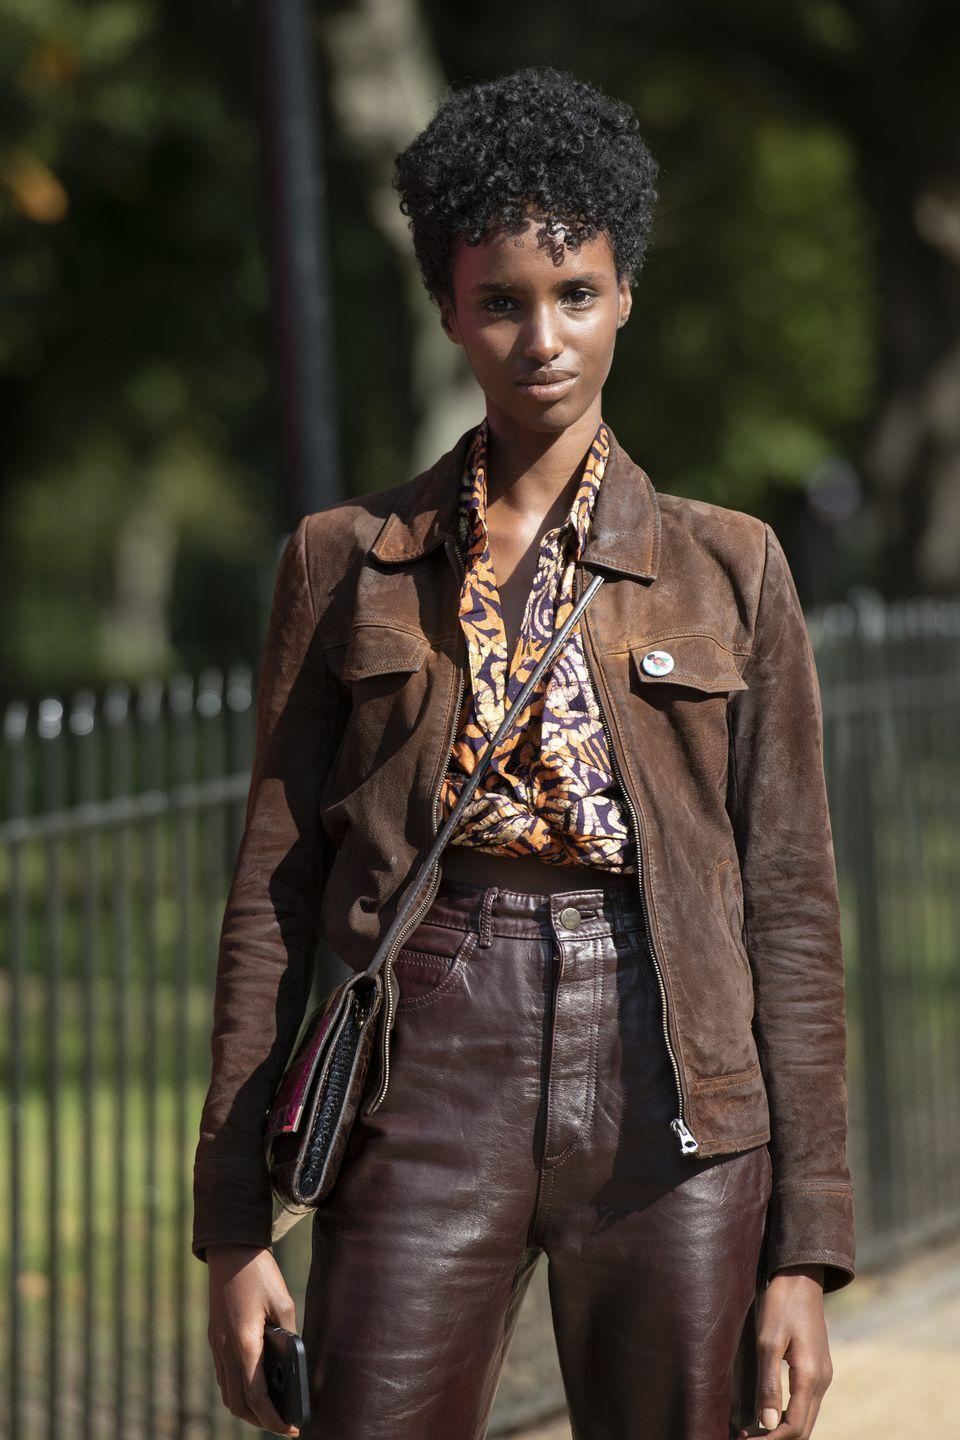 "<p>Scouted in London at age 16, Kenyan-born Abdulkadir began modelling after completing her Bachelor's degree in Pharmacology. </p><p>She has walked for <a href=""https://www.elle.com/uk/fashion/g26023803/roksanda-outnet-capsule-collection/"" rel=""nofollow noopener"" target=""_blank"" data-ylk=""slk:Roksanda"" class=""link rapid-noclick-resp"">Roksanda</a>, <a href=""https://www.elle.com/uk/fashion/what-to-wear/longform/a41379/simone-rocha-interview/"" rel=""nofollow noopener"" target=""_blank"" data-ylk=""slk:Simone Rocha"" class=""link rapid-noclick-resp"">Simone Rocha</a> and<a href=""https://www.elle.com/uk/fashion/what-to-wear/news/a32694/where-to-get-ashishs-iconic-immigrant-t-shirt/"" rel=""nofollow noopener"" target=""_blank"" data-ylk=""slk:Ashish"" class=""link rapid-noclick-resp""> Ashish</a>, and also runs Instagram book club <a href=""https://www.instagram.com/bibisbooks/"" rel=""nofollow noopener"" target=""_blank"" data-ylk=""slk:@bibisbook"" class=""link rapid-noclick-resp"">@bibisbook</a>, a platform that celebrates and amplifies Black authors and literature.</p>"